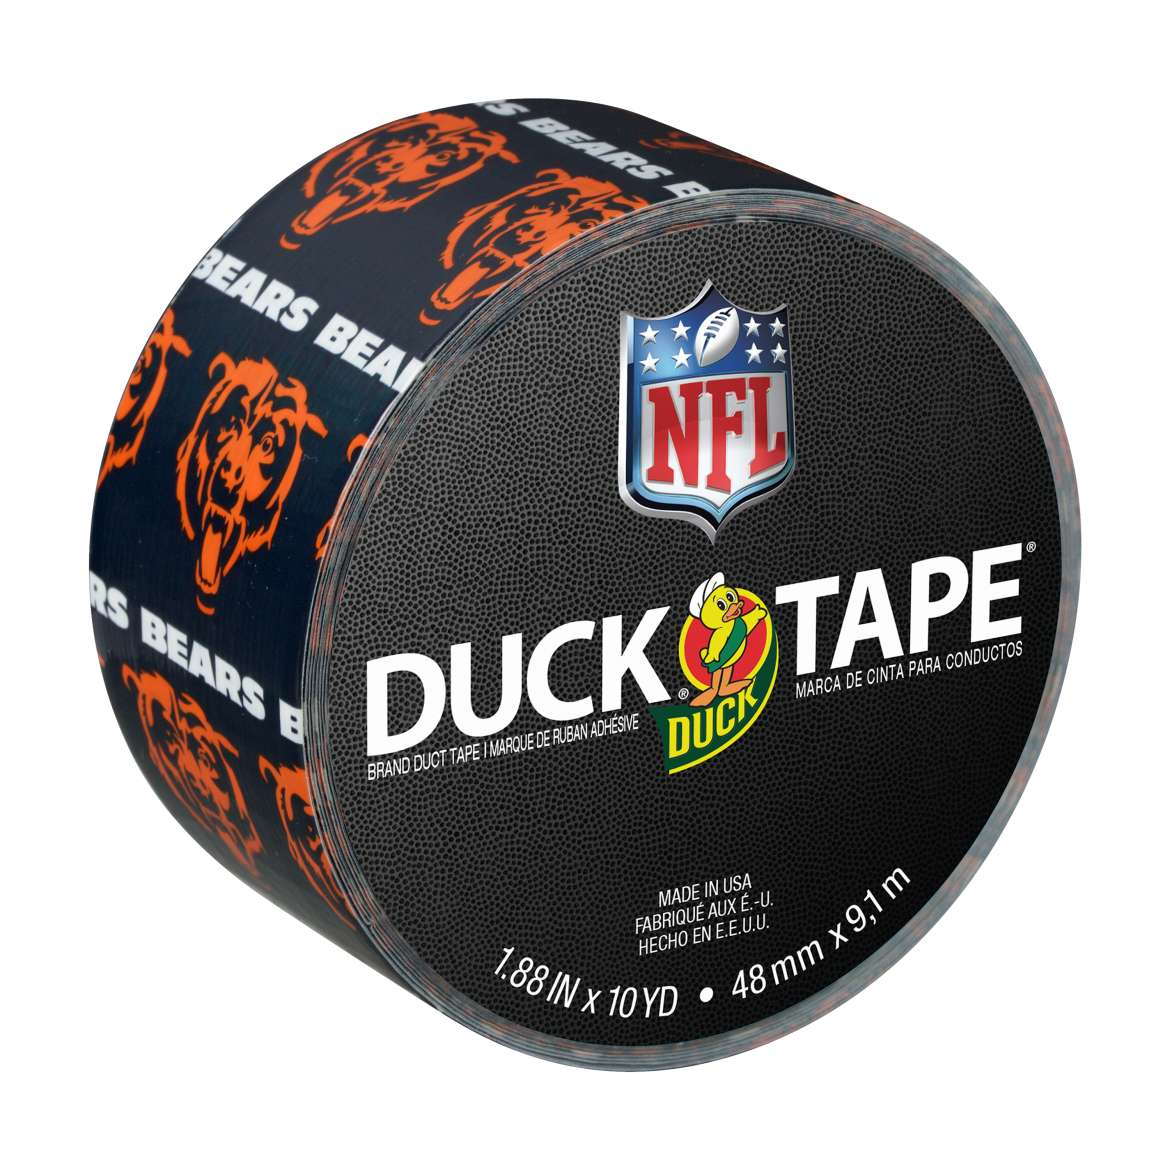 Duck Brand NFL Licensed Duct Tape, 1.88 in. x 10 yds., Chicago Bears